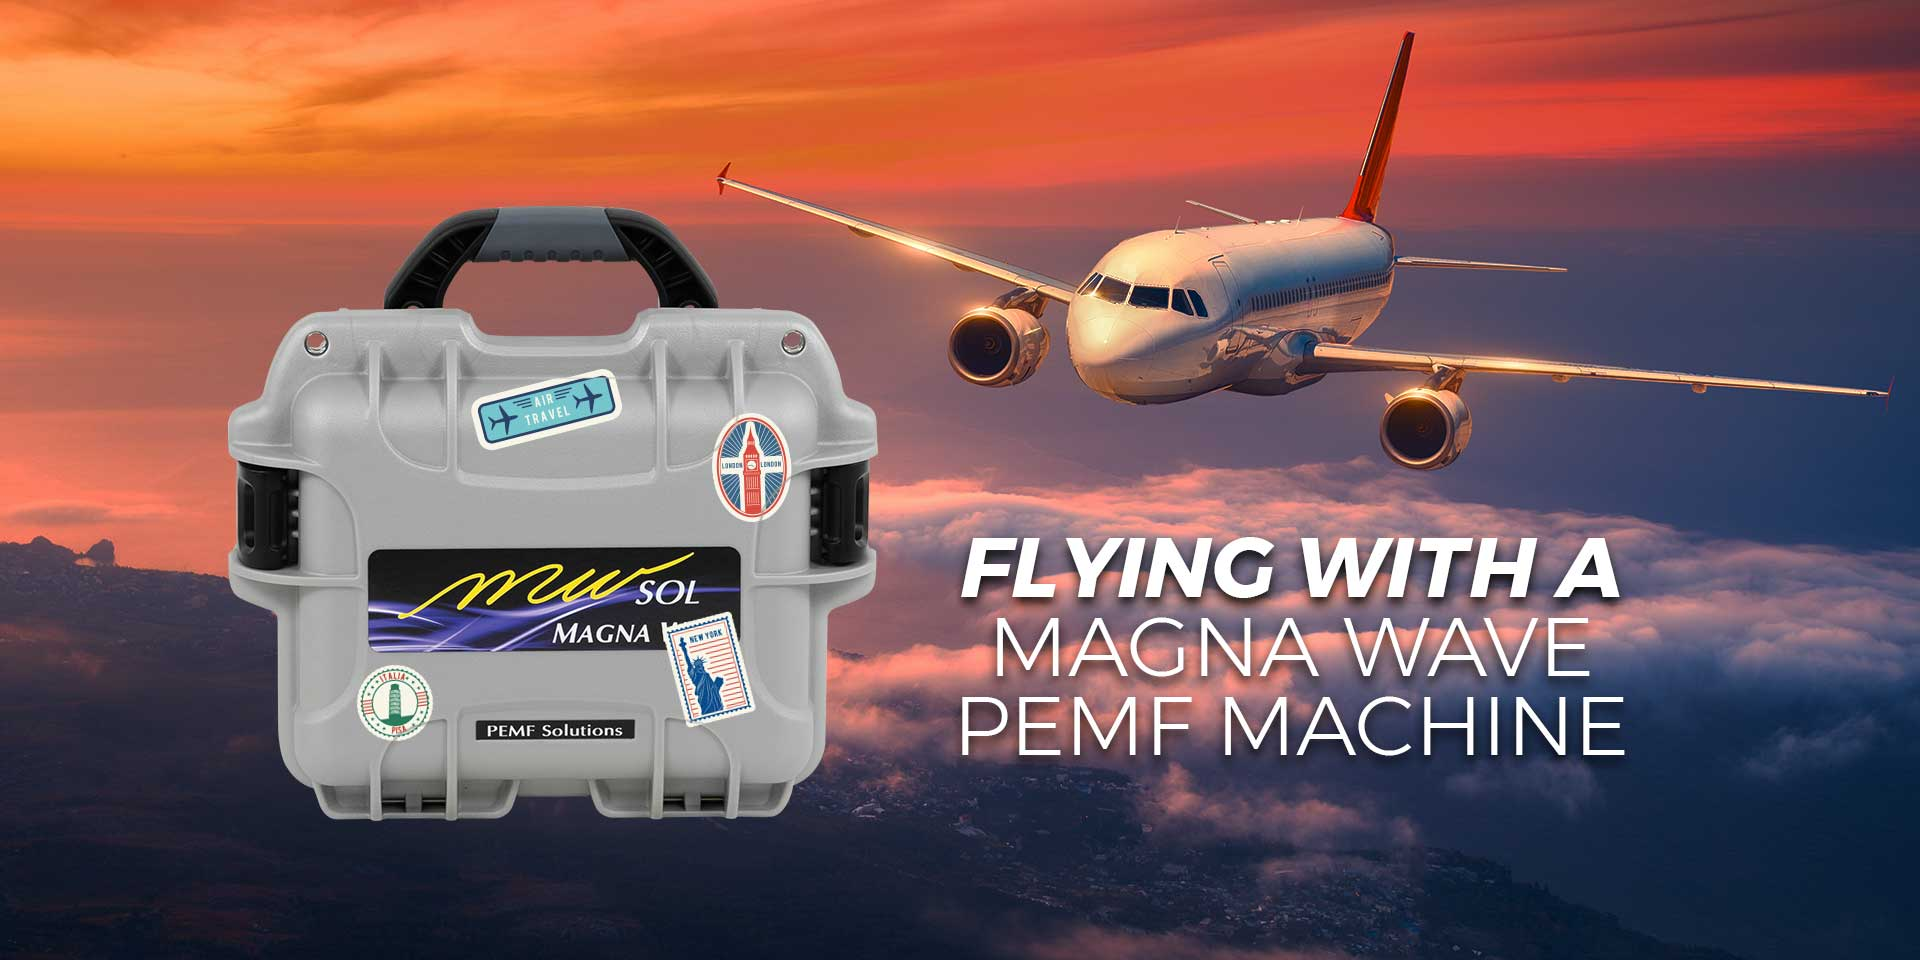 Flying with a Magna Wave PEMF Machine